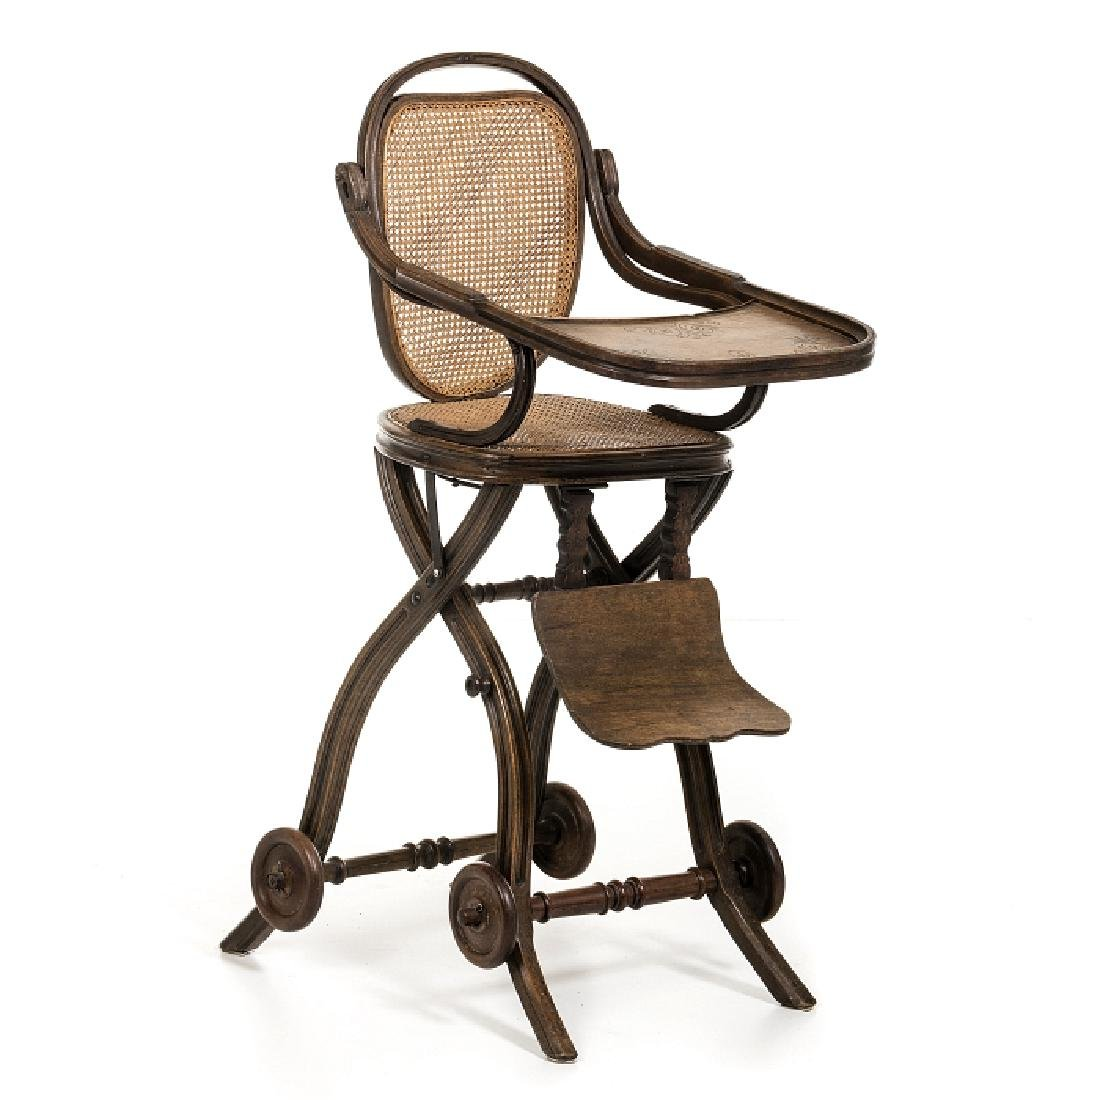 THONET (19th/20th) (Attr.) - Child's meal chair